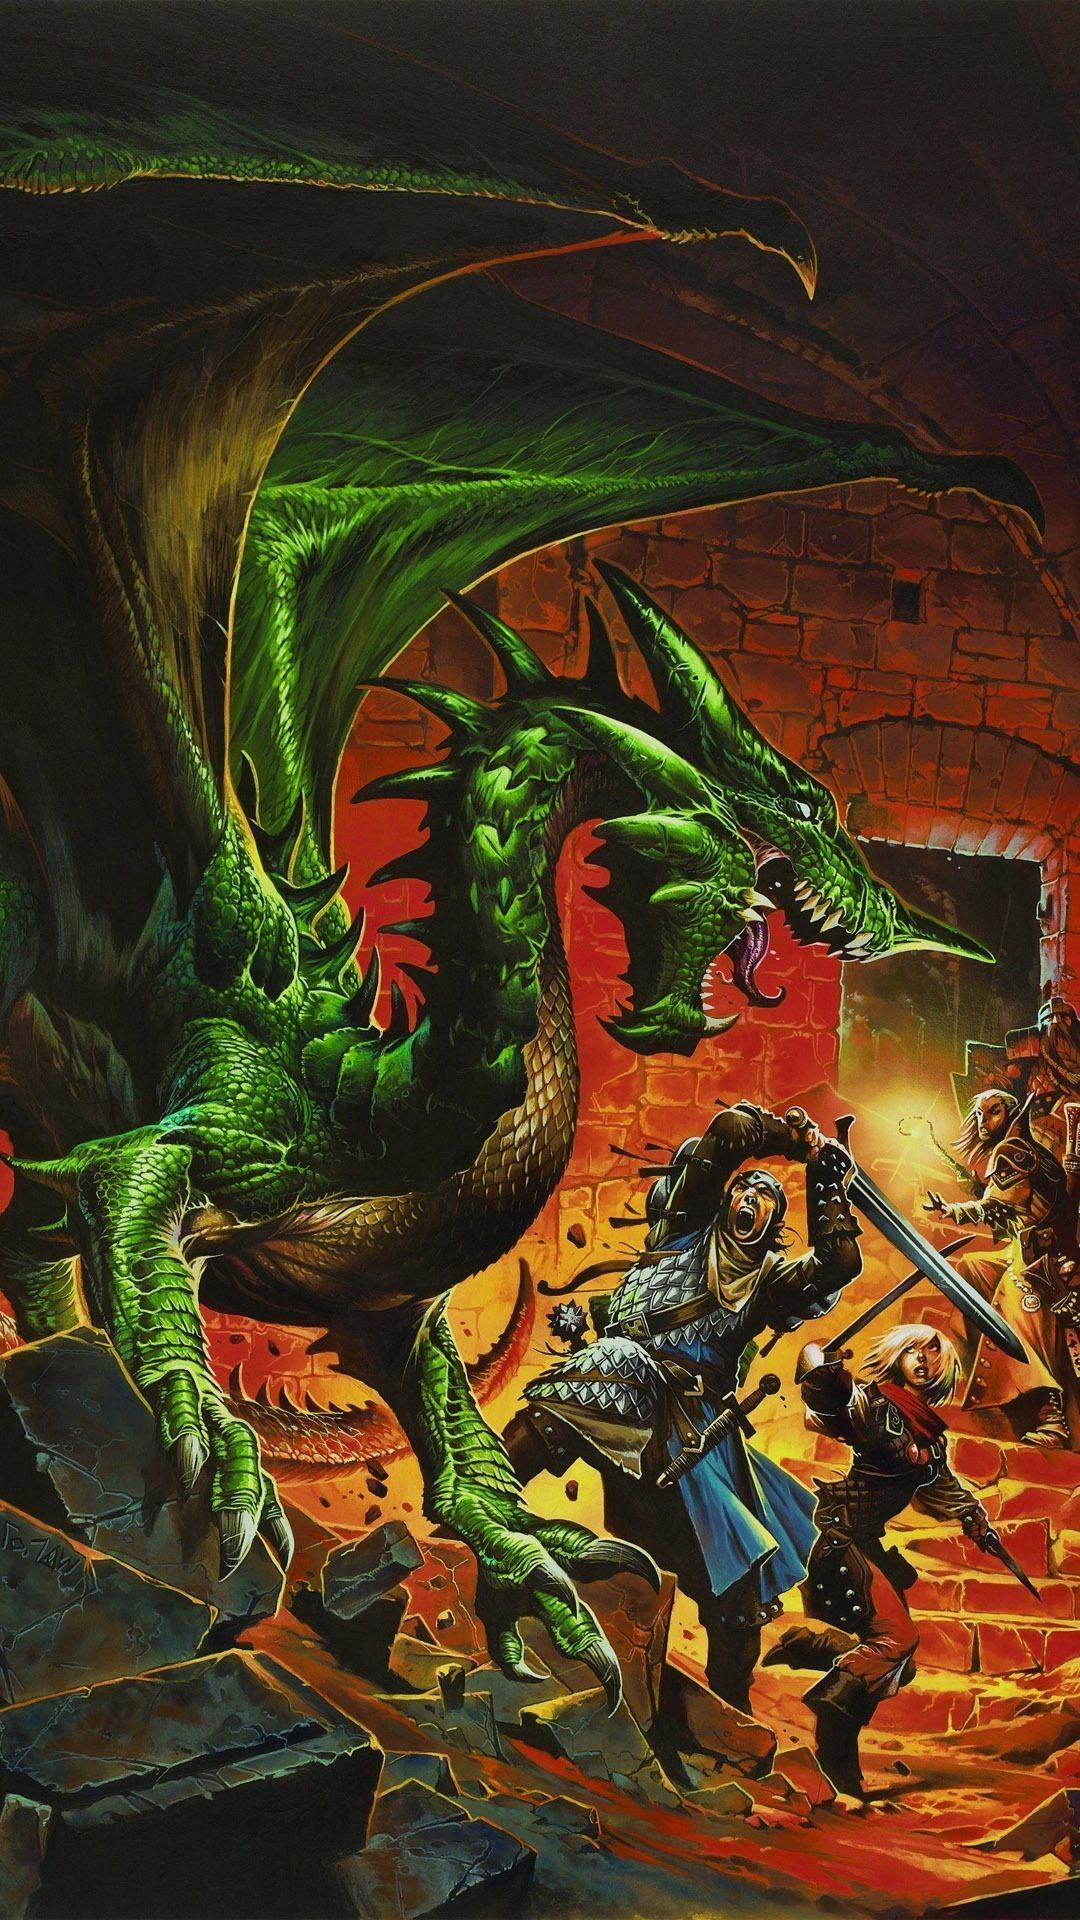 1080x1920 Dungeons & Dragons Mobile Wallpaper 9247